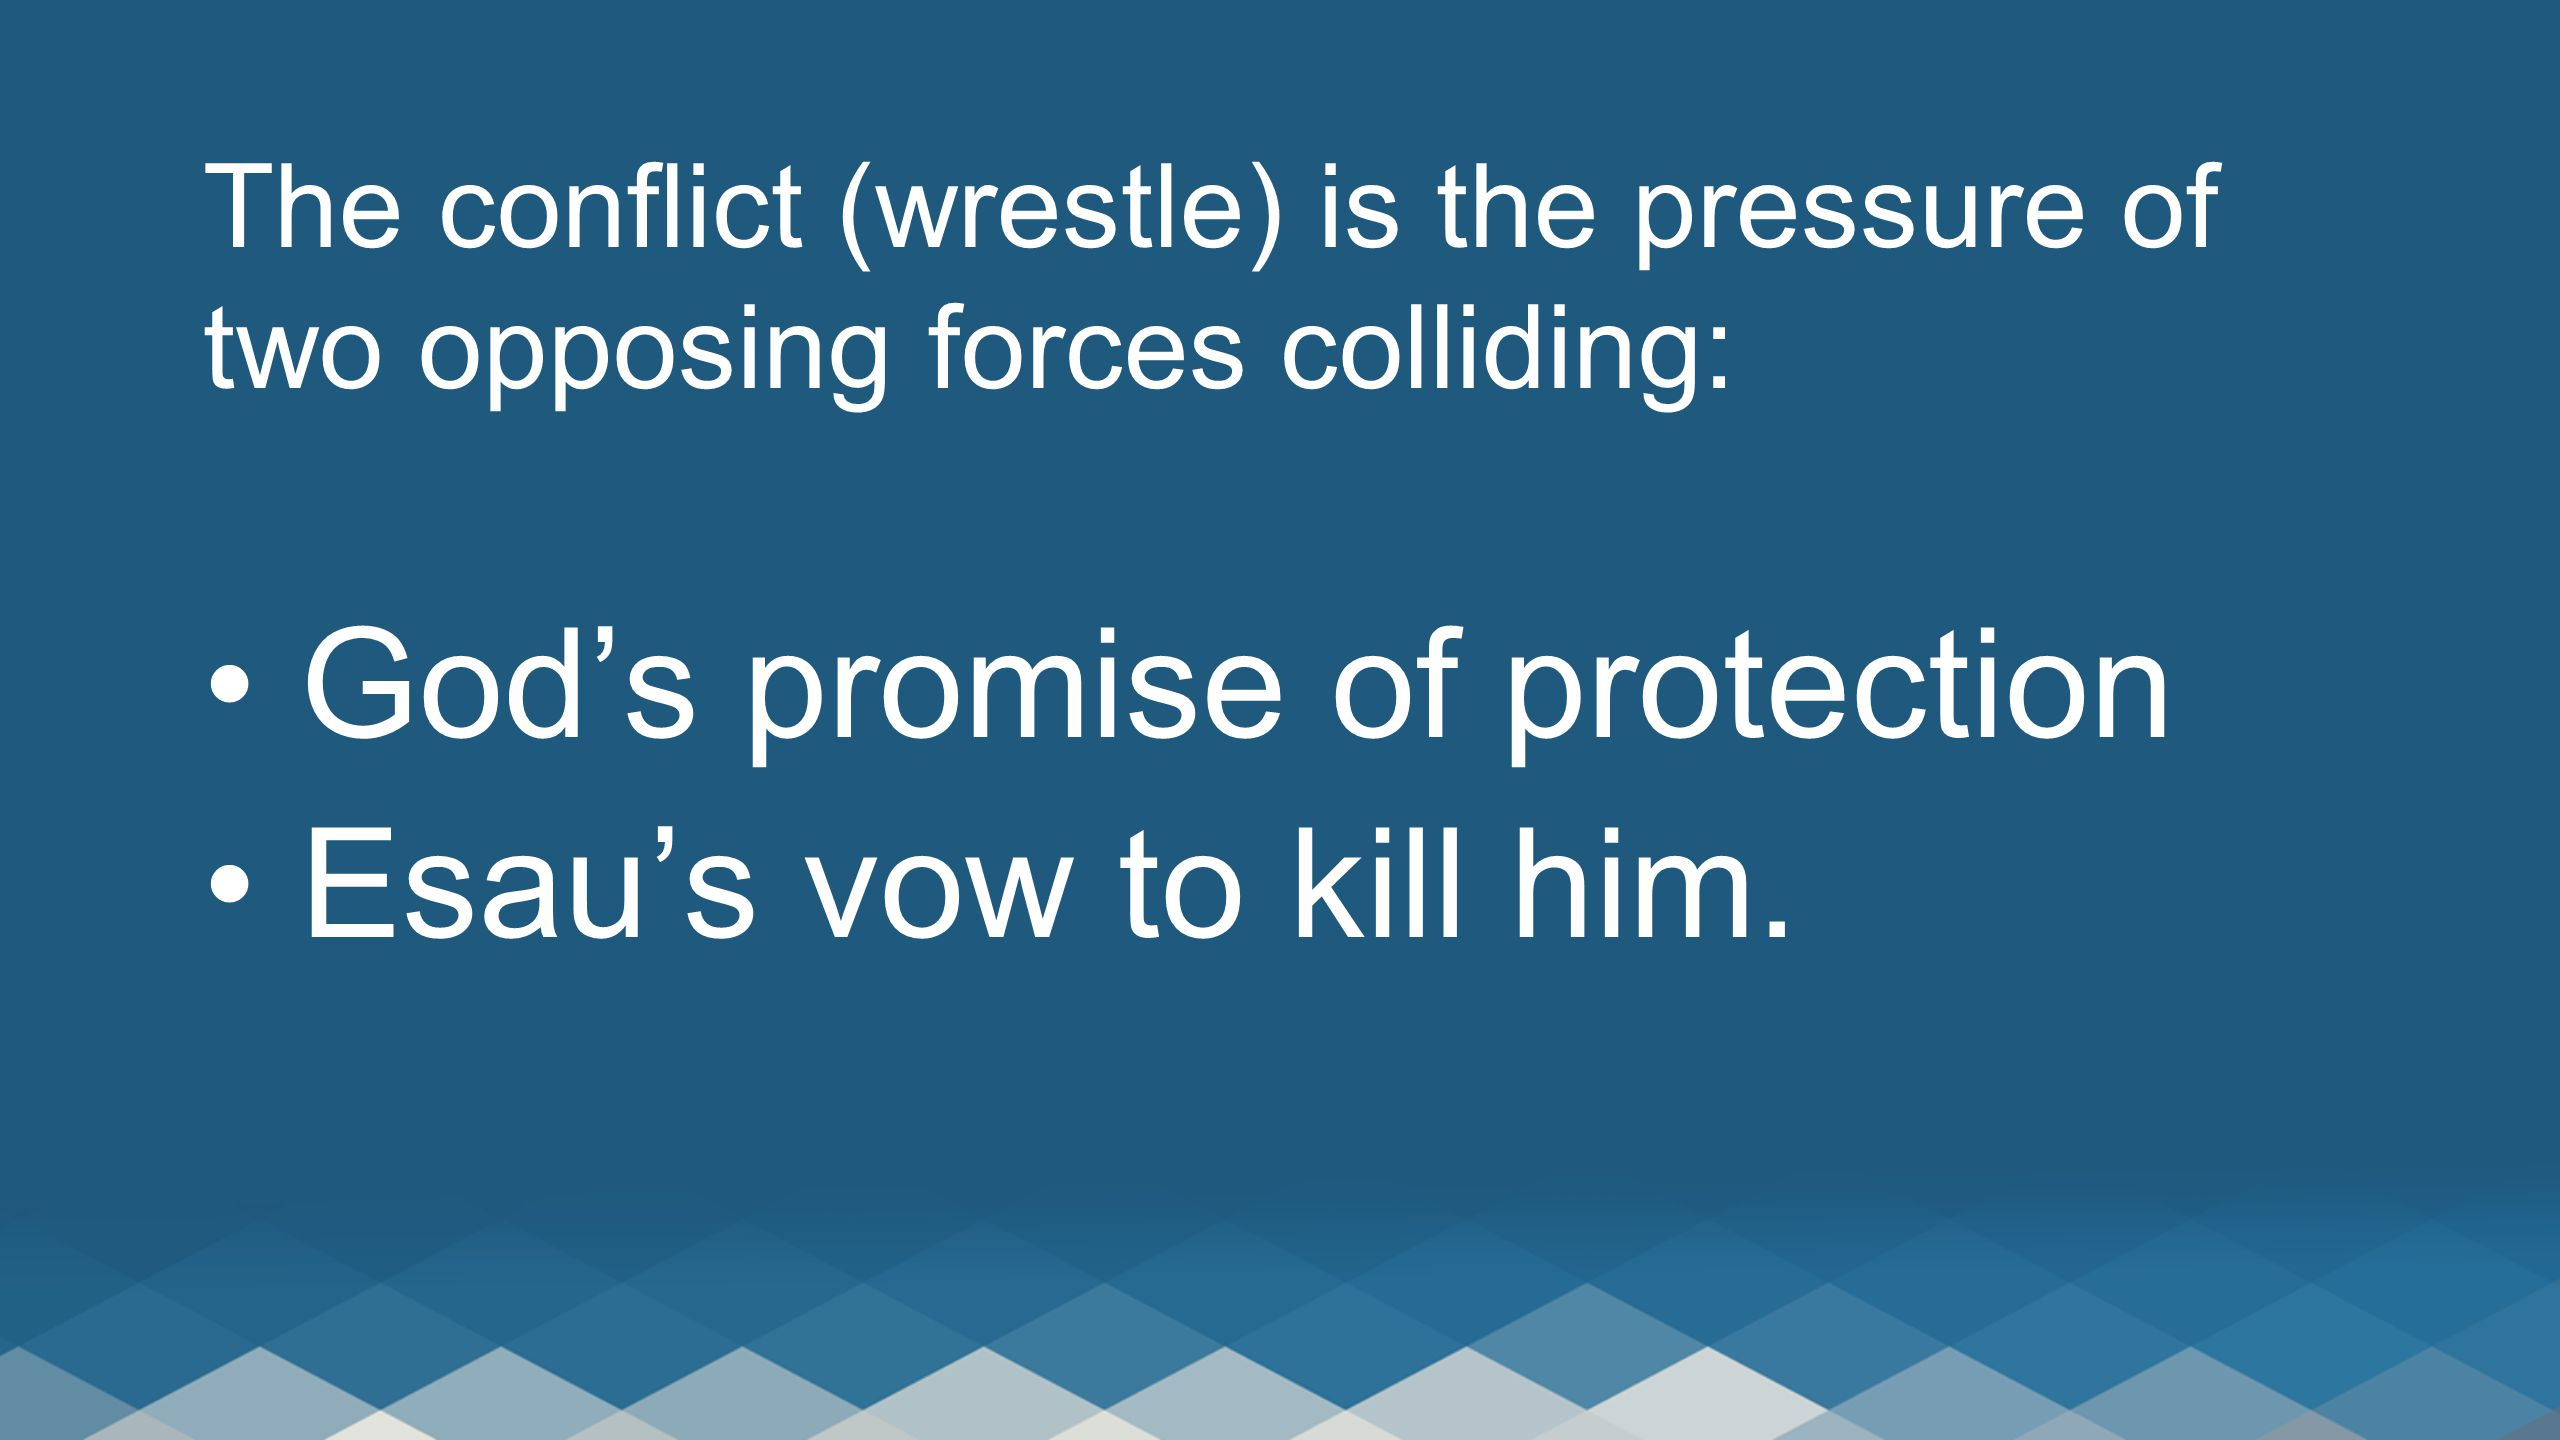 The conflict (wrestle) is the pressure of two opposing forces colliding: God's promise of protection Esau's vow to kill him.